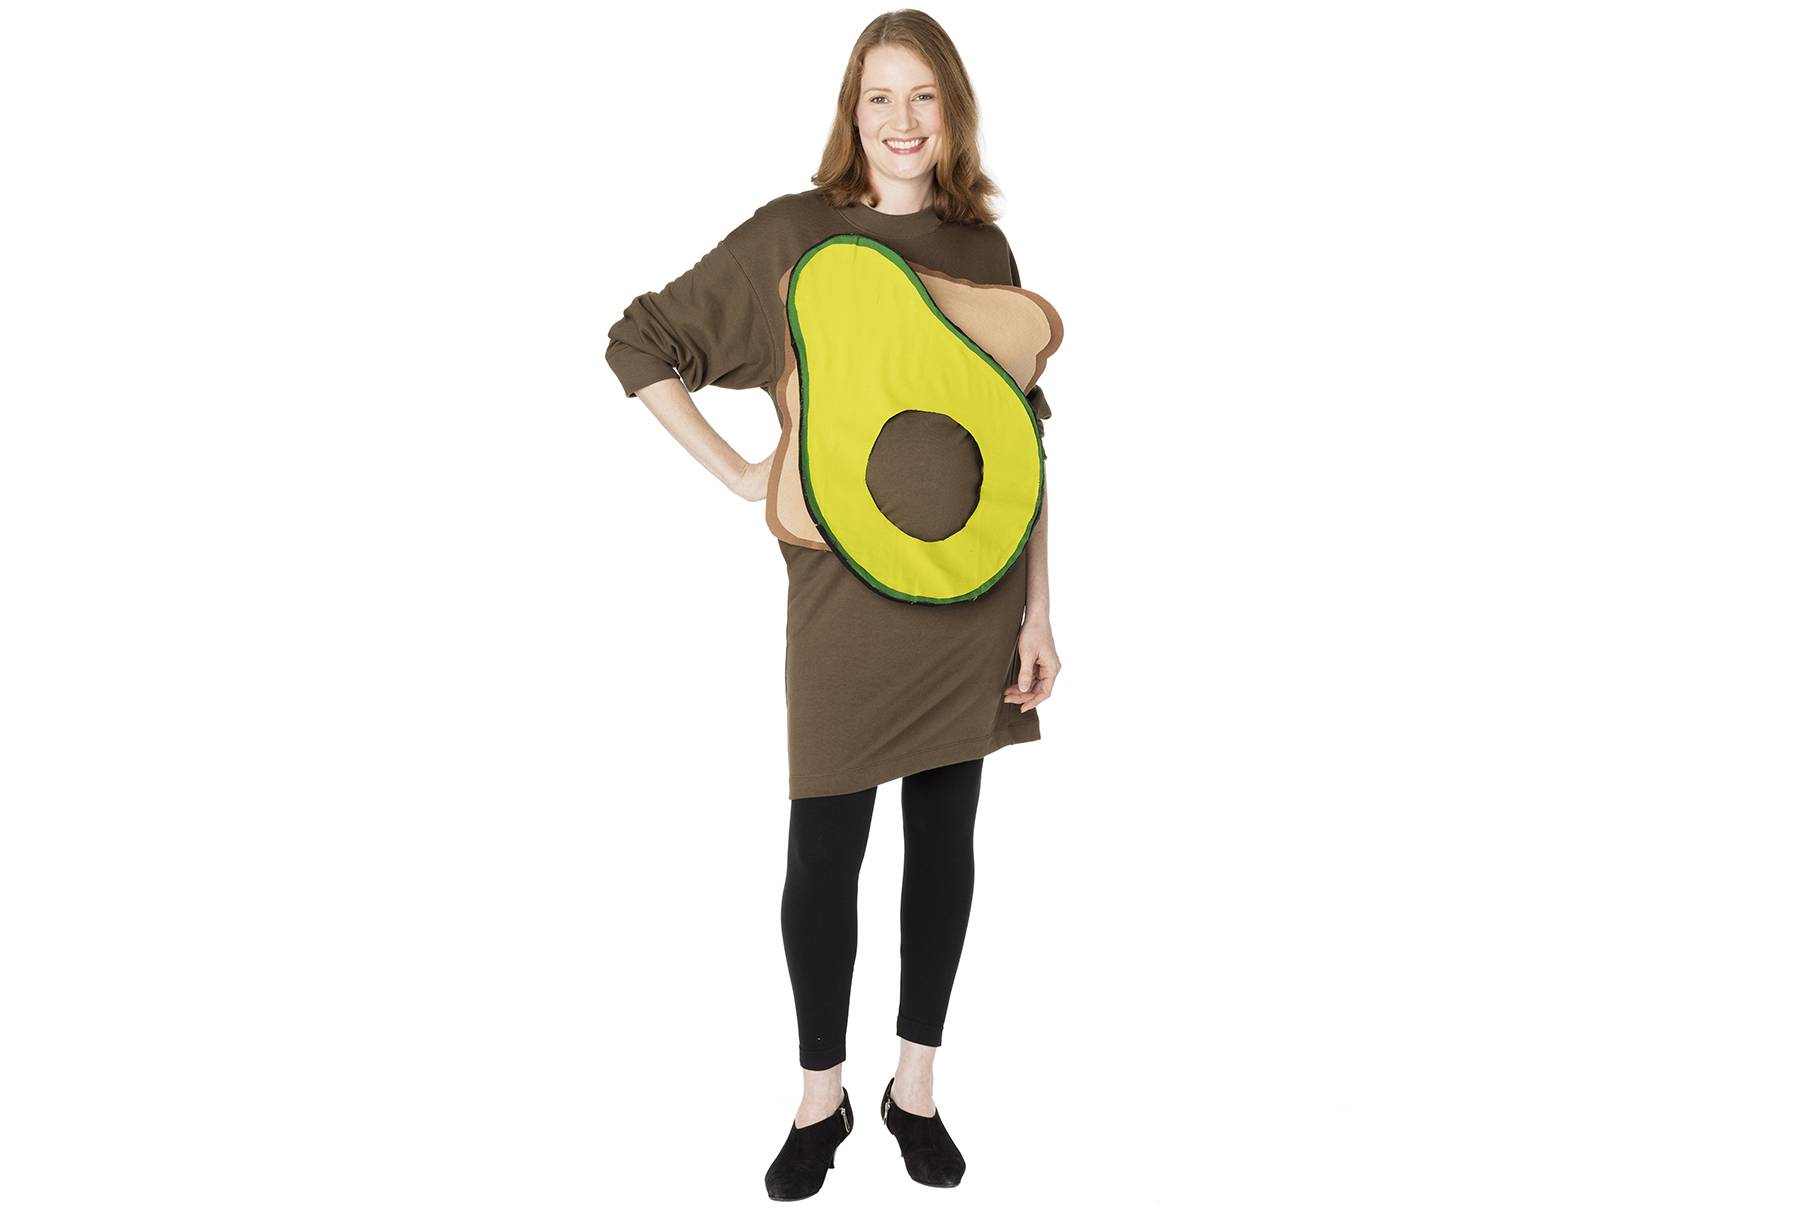 DIY Halloween costumes - Avocado Toast idea for pregnant women